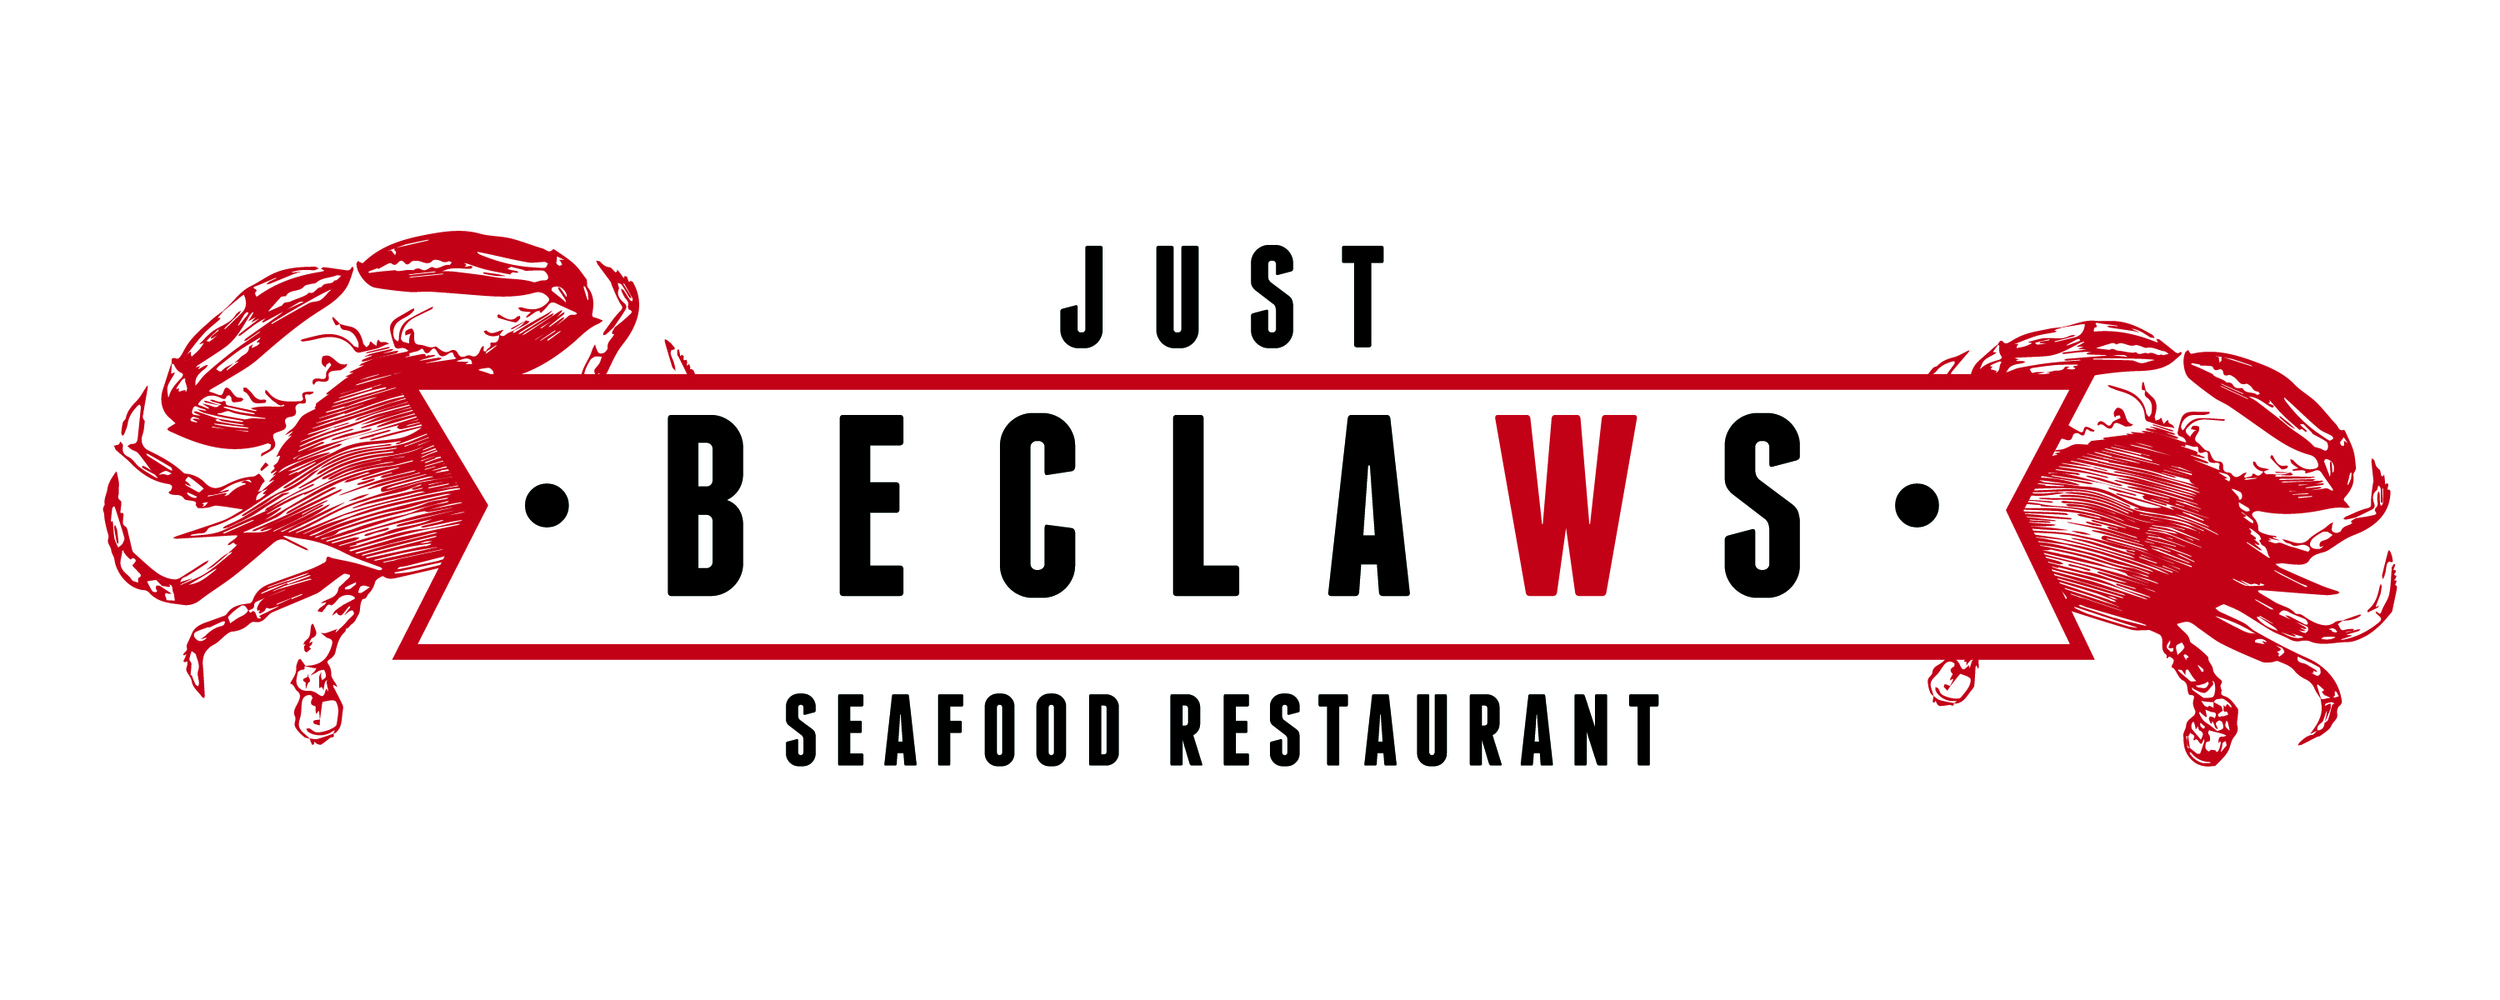 Just Beclaws Dual Crab Banner Logo-01.jpg